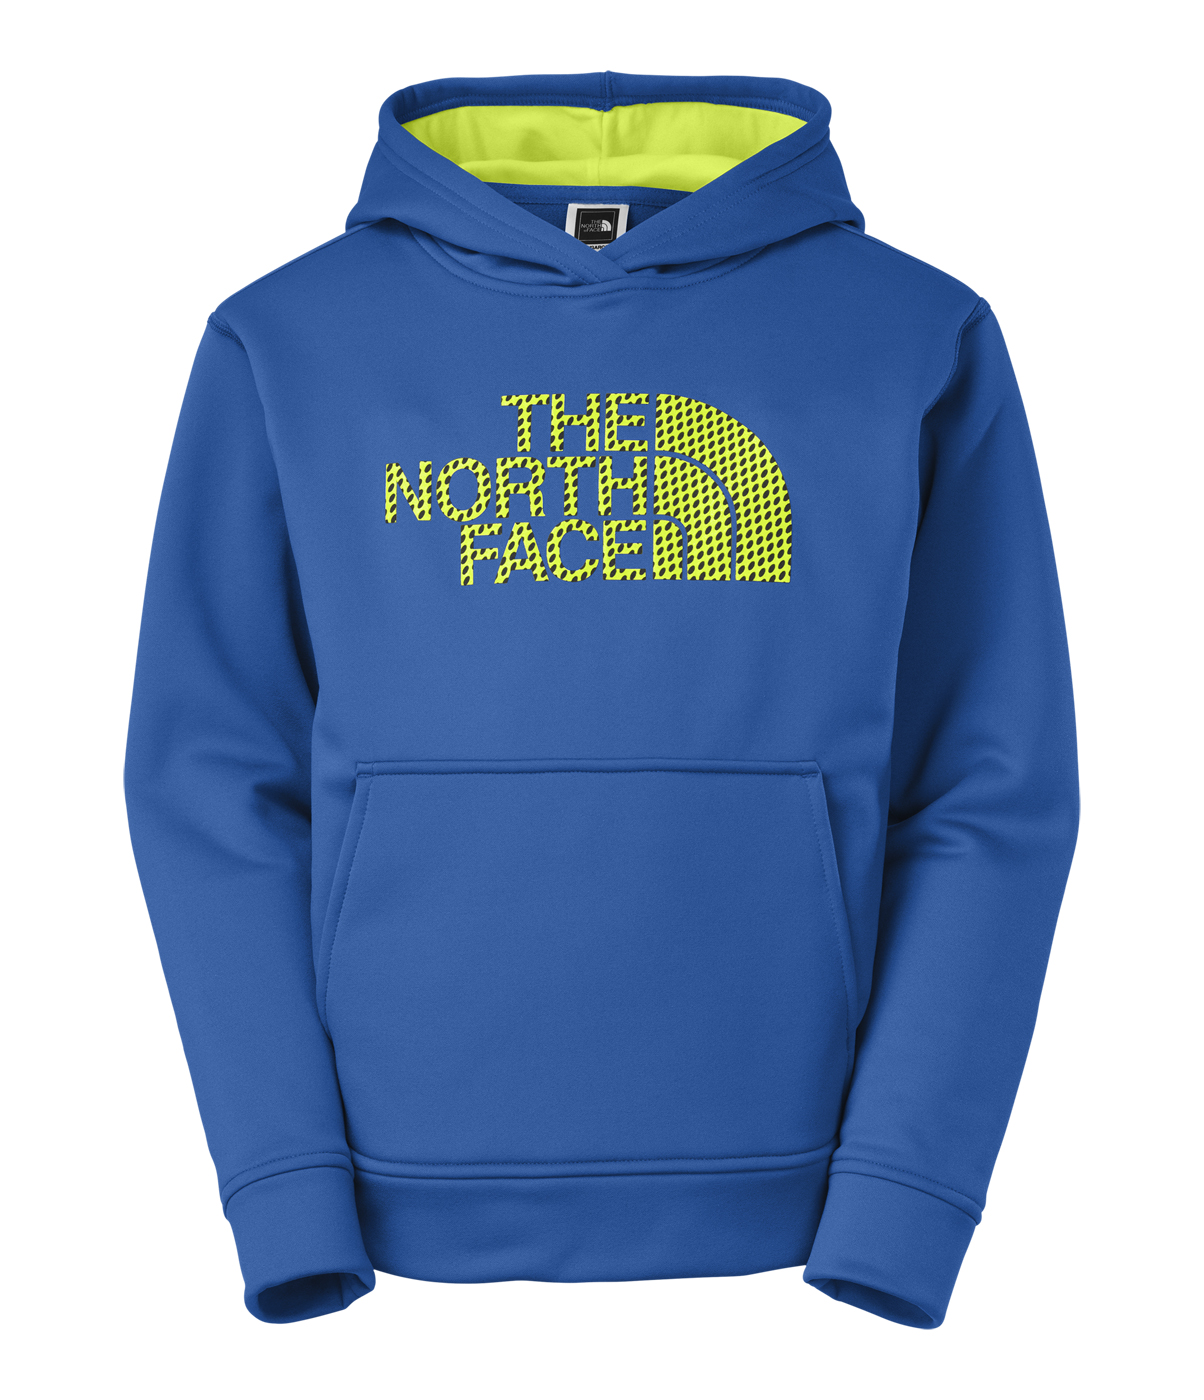 North Face Clearance Boys Northface Discount North Face Clearance Cheapest